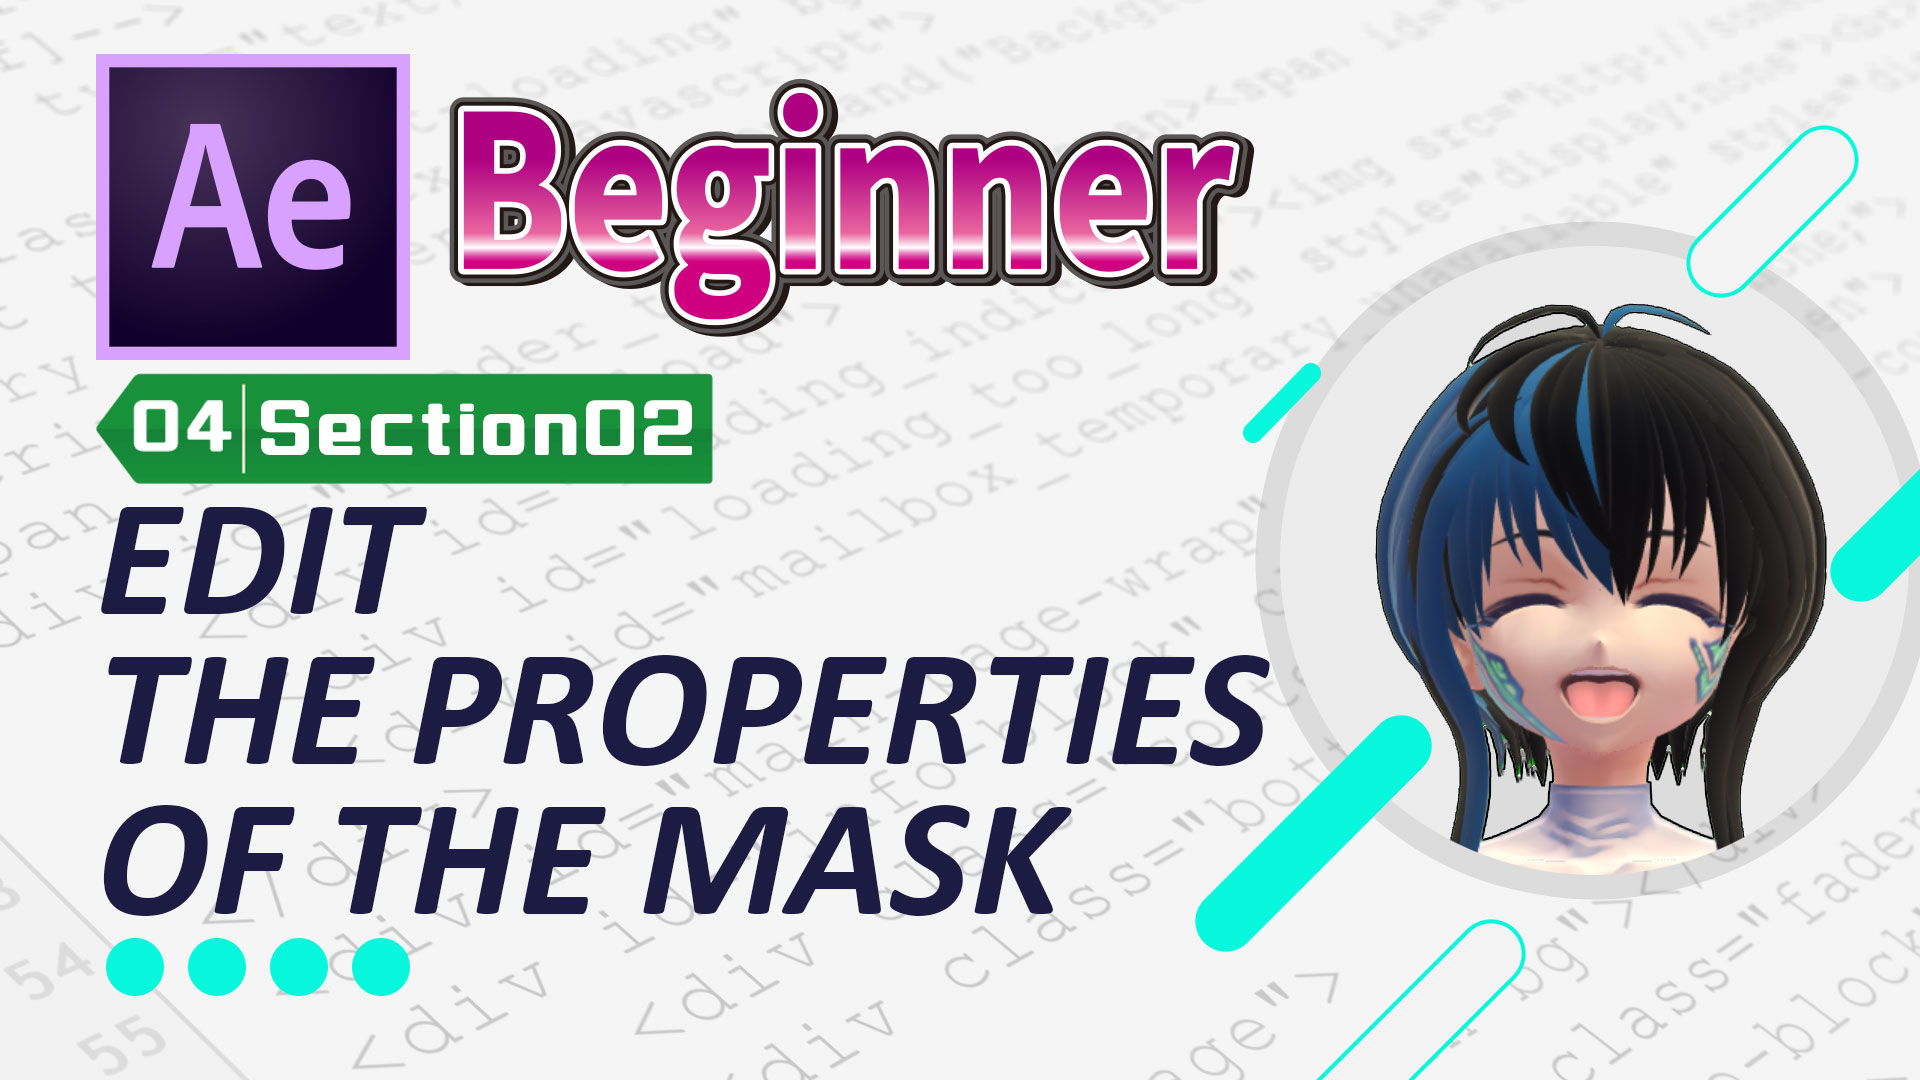 EDIT THE PROPERTIES OF THE MASK